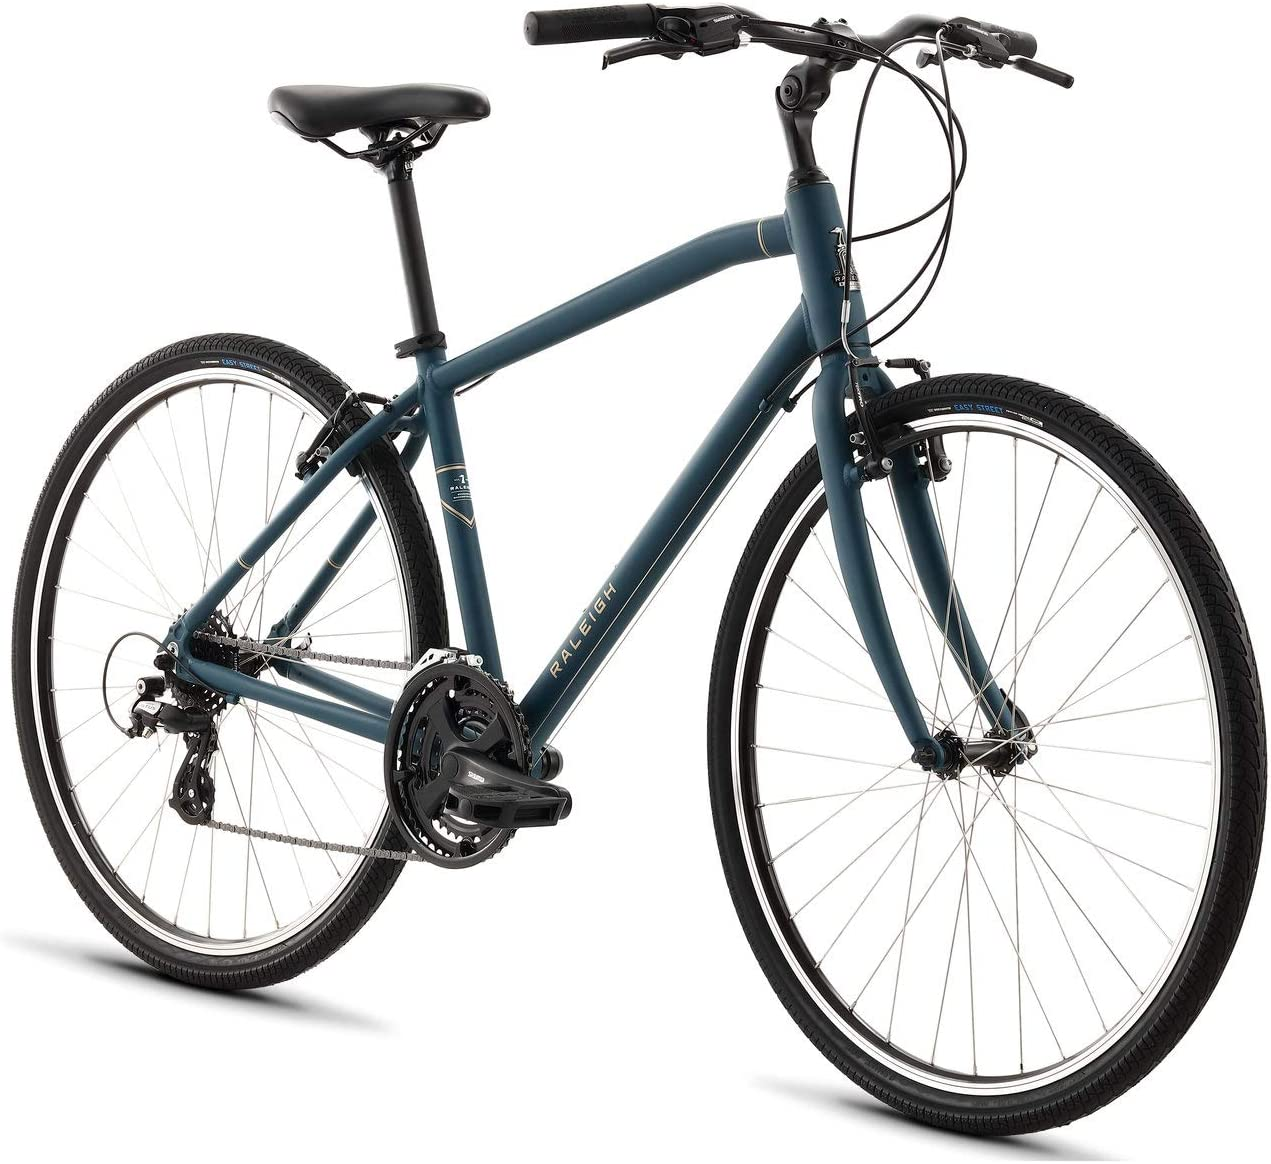 Raleigh Detour 2 Hybrid Bike for Men